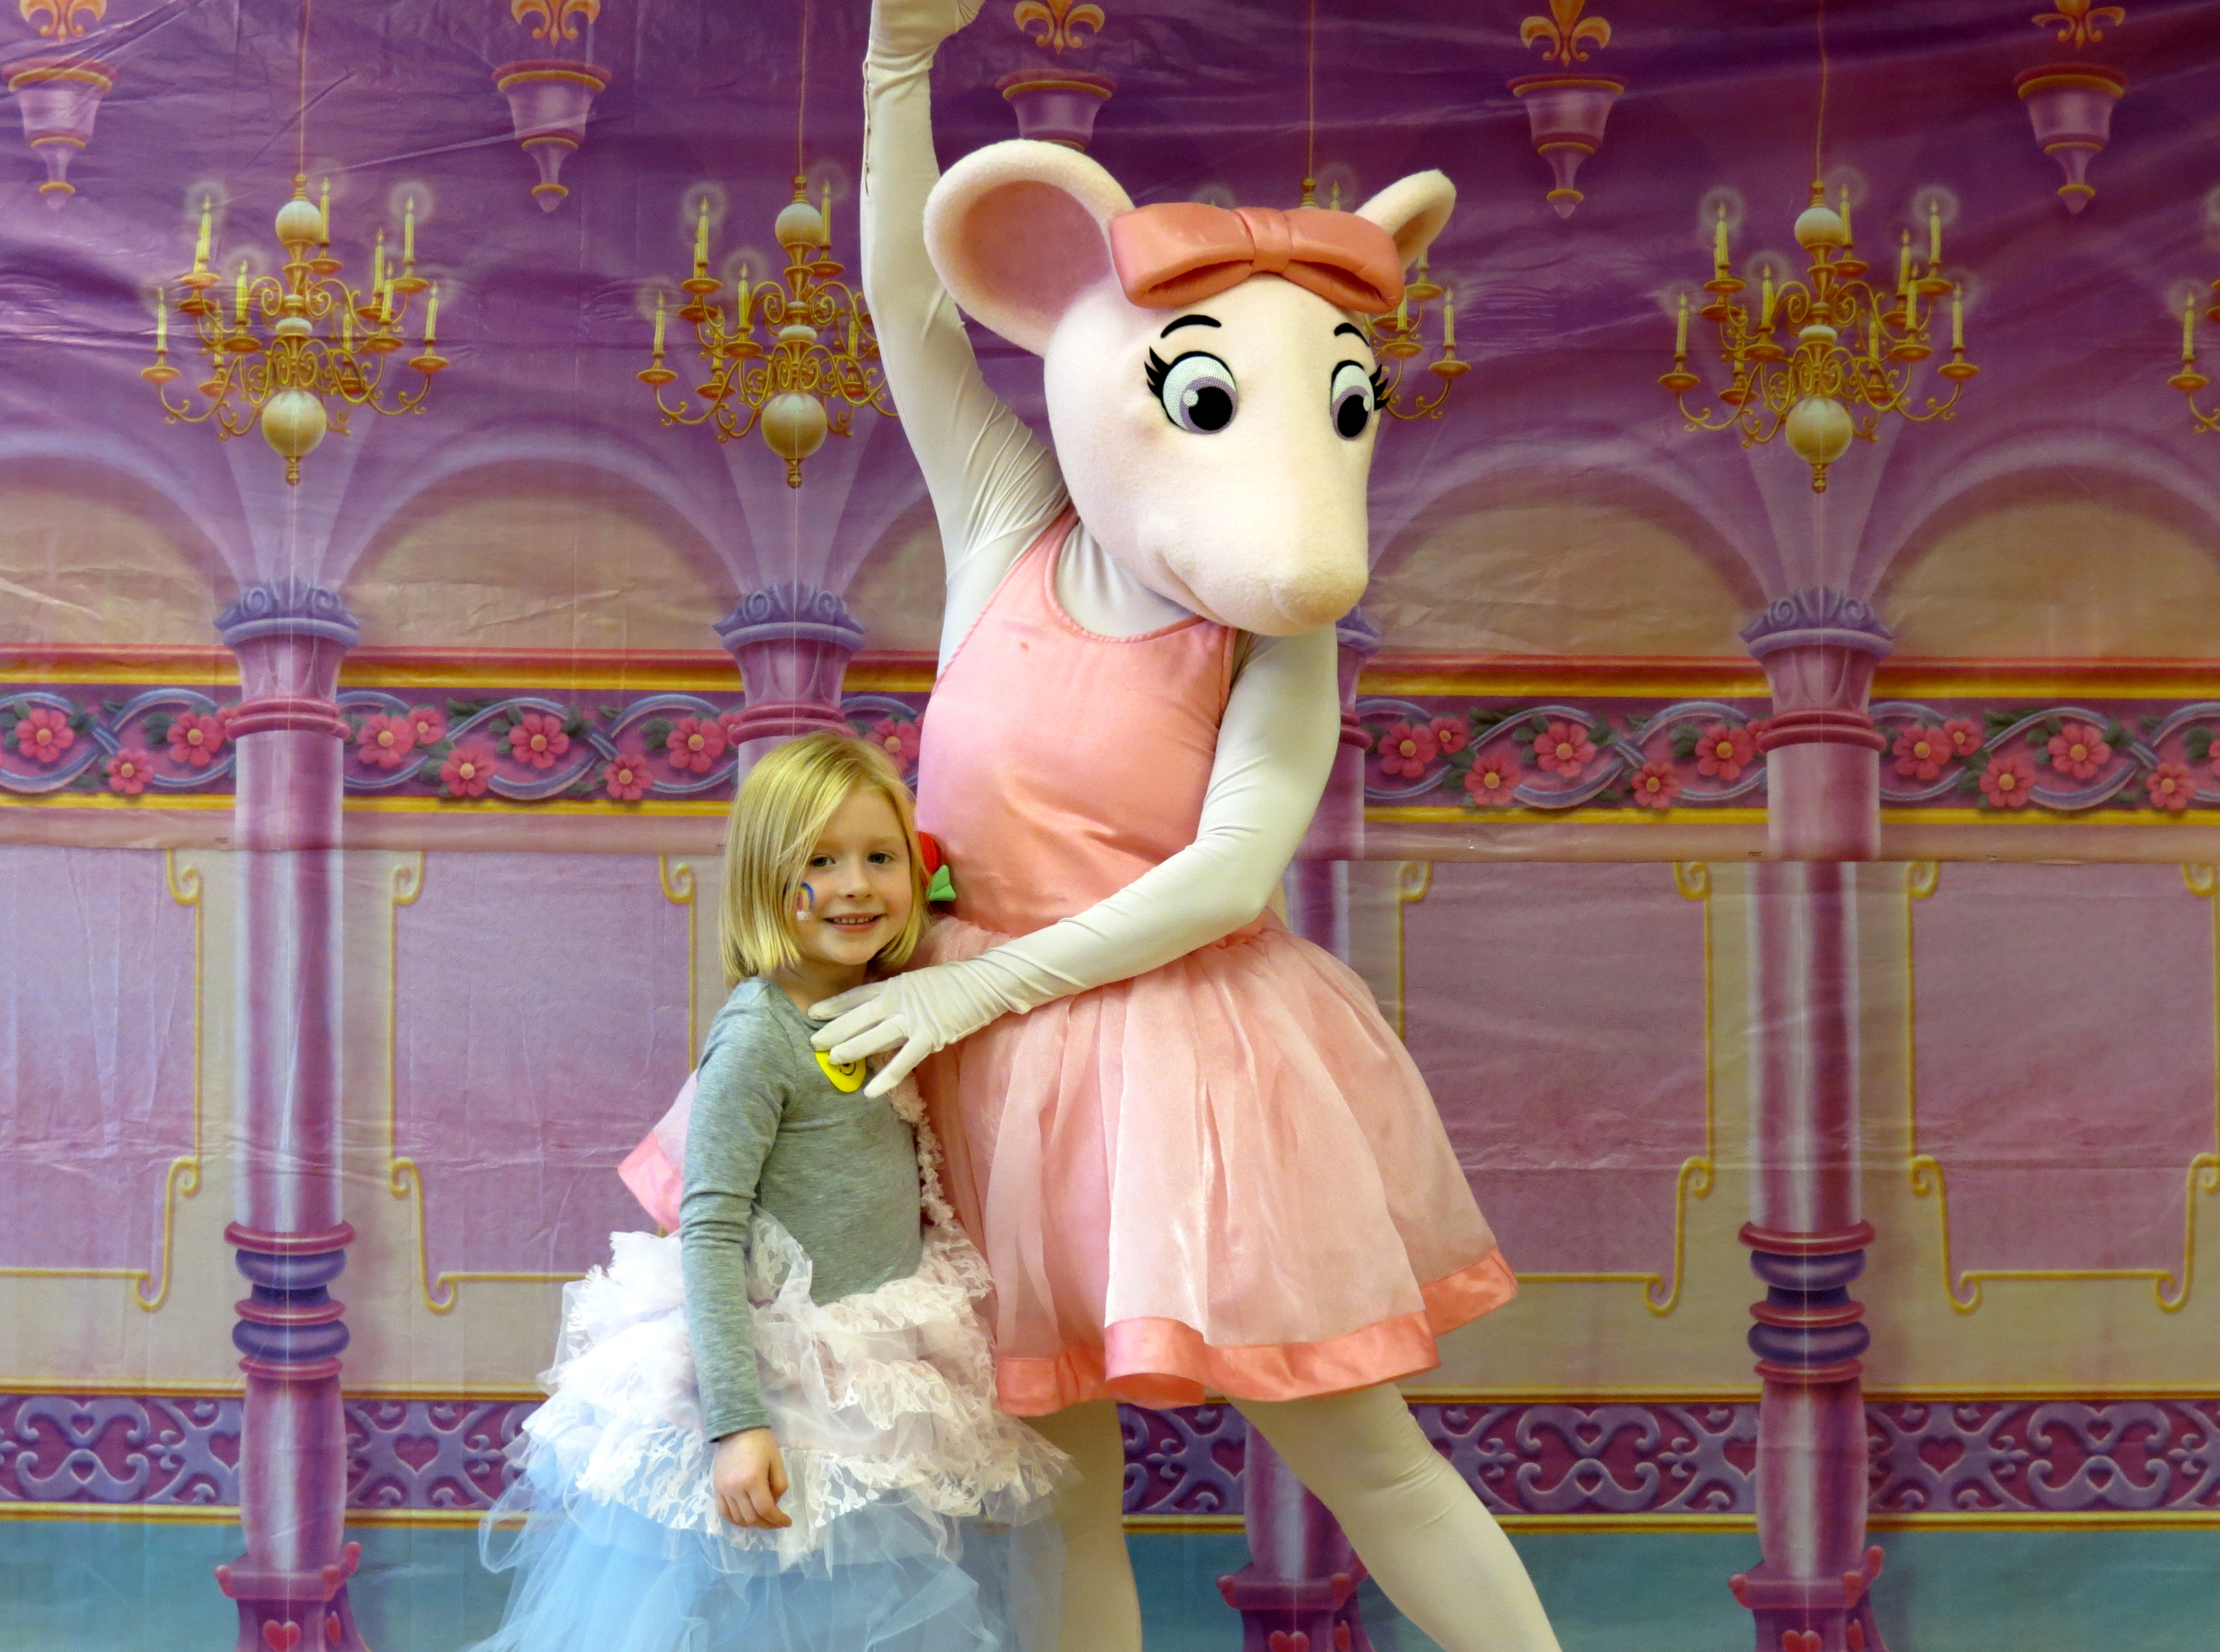 It's just a picture of Fan Angelina Ballerina Characters